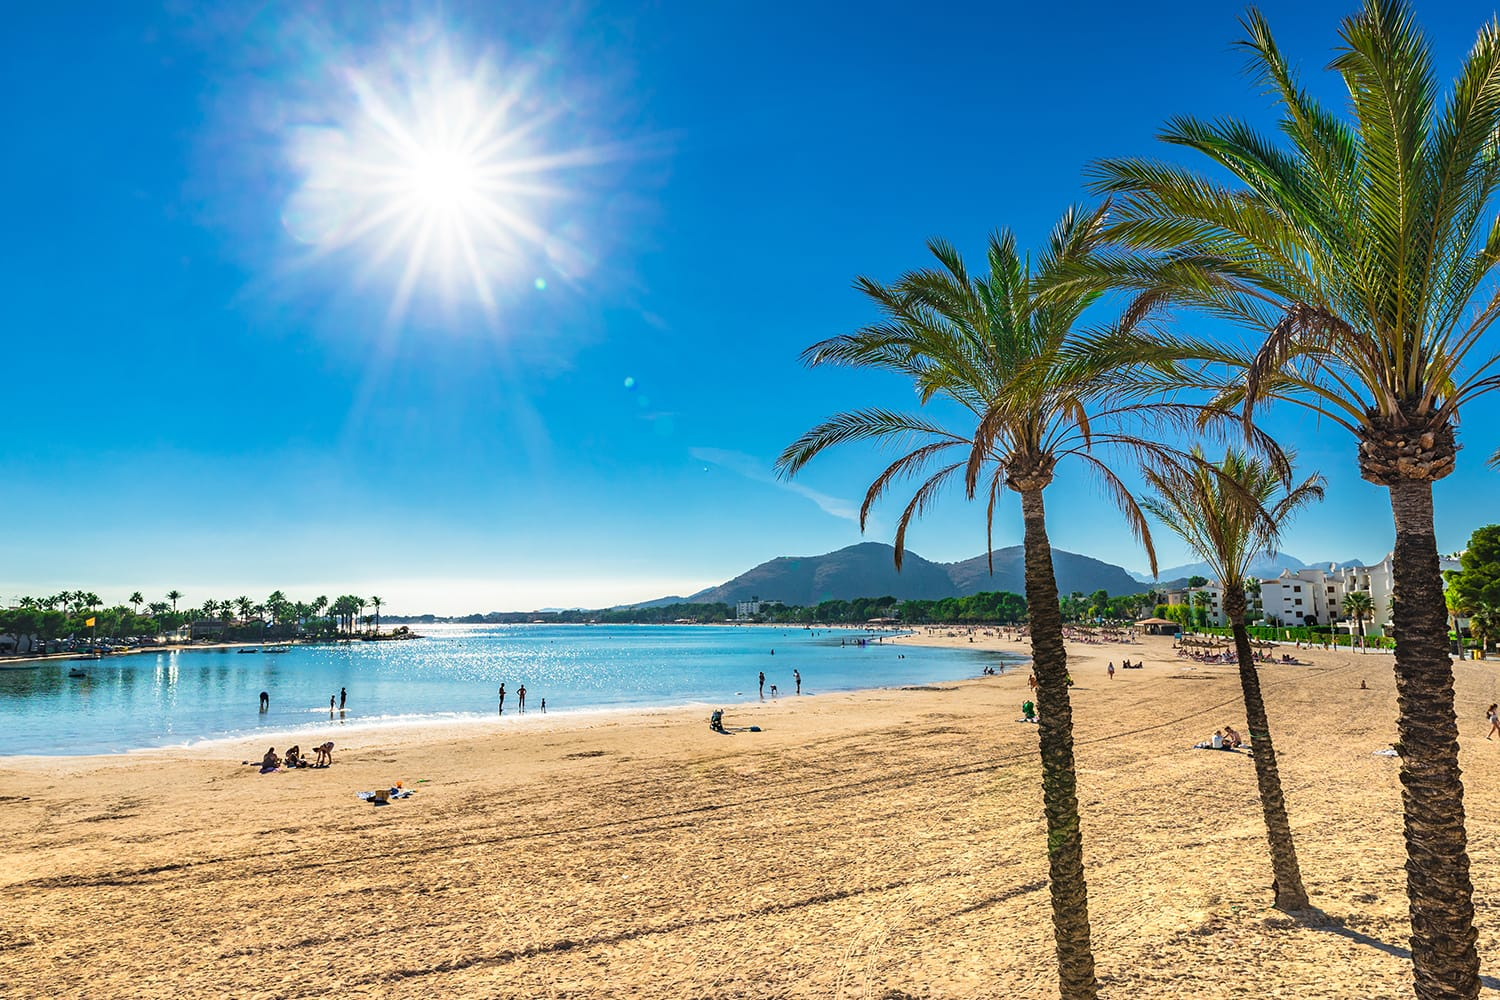 Beautiful view of Platja d'Alcudia with palm trees, sand beach Majorca, Spain